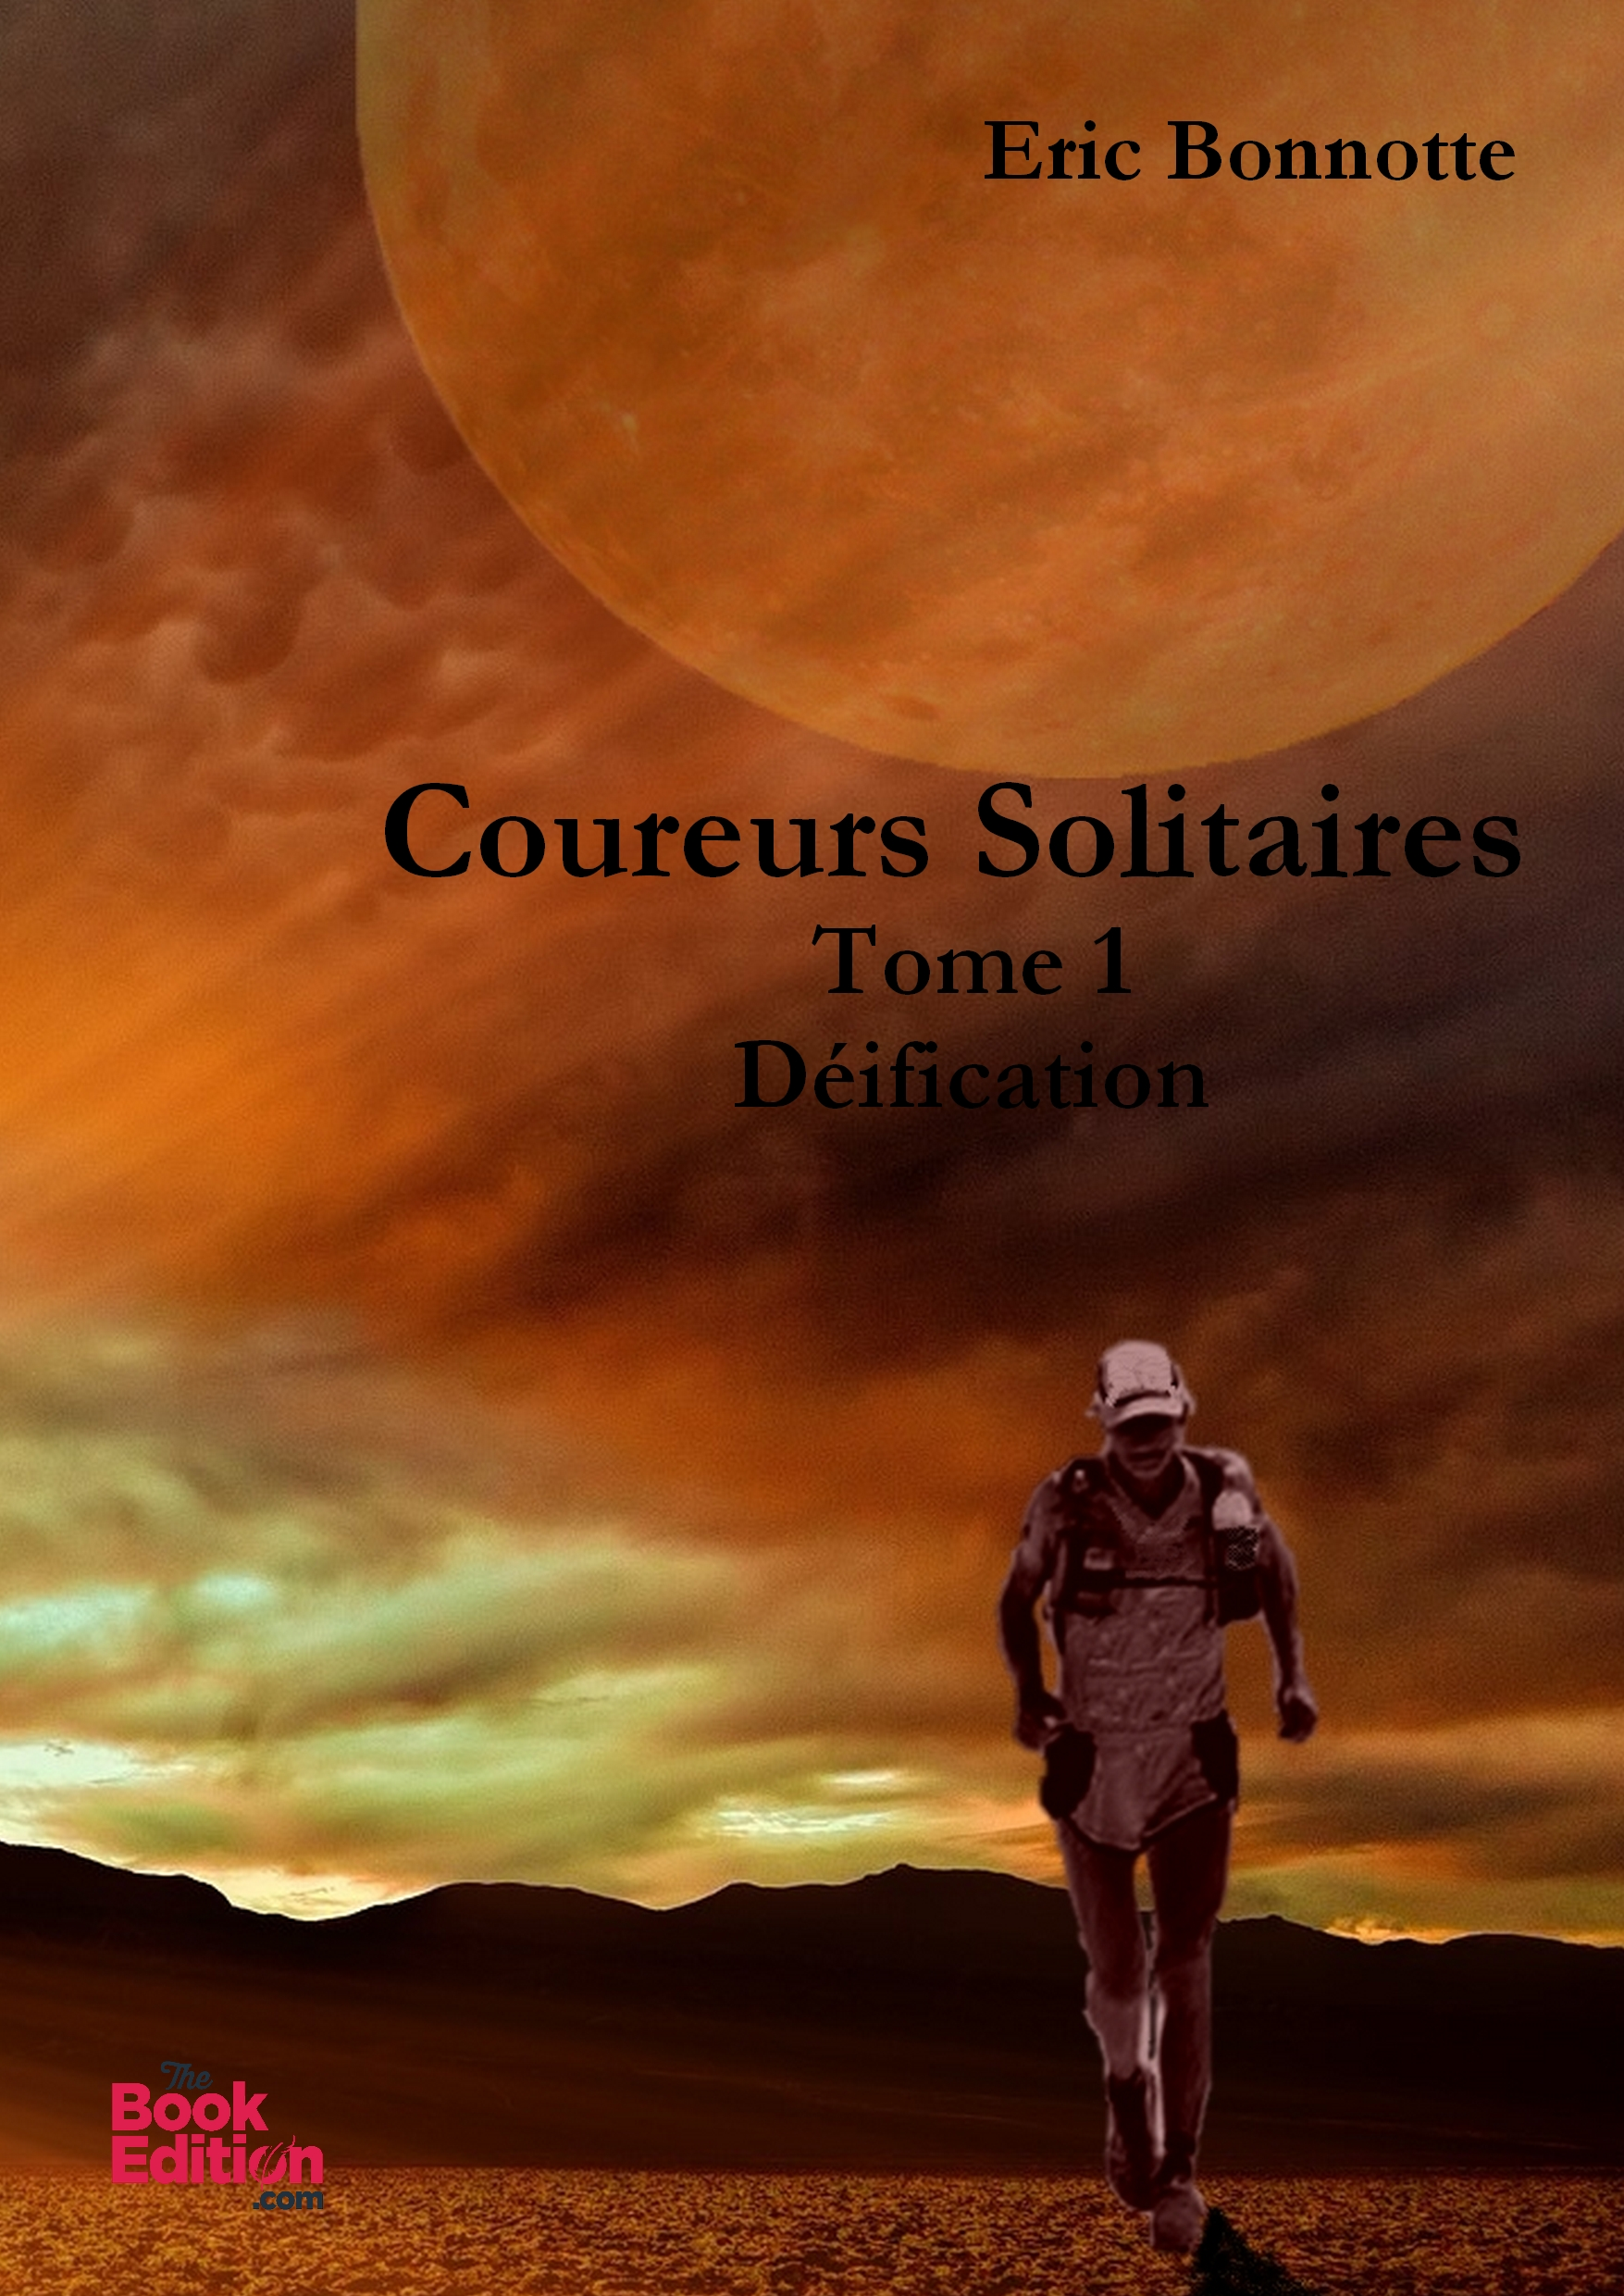 Coureurs Solitaires Tome 1